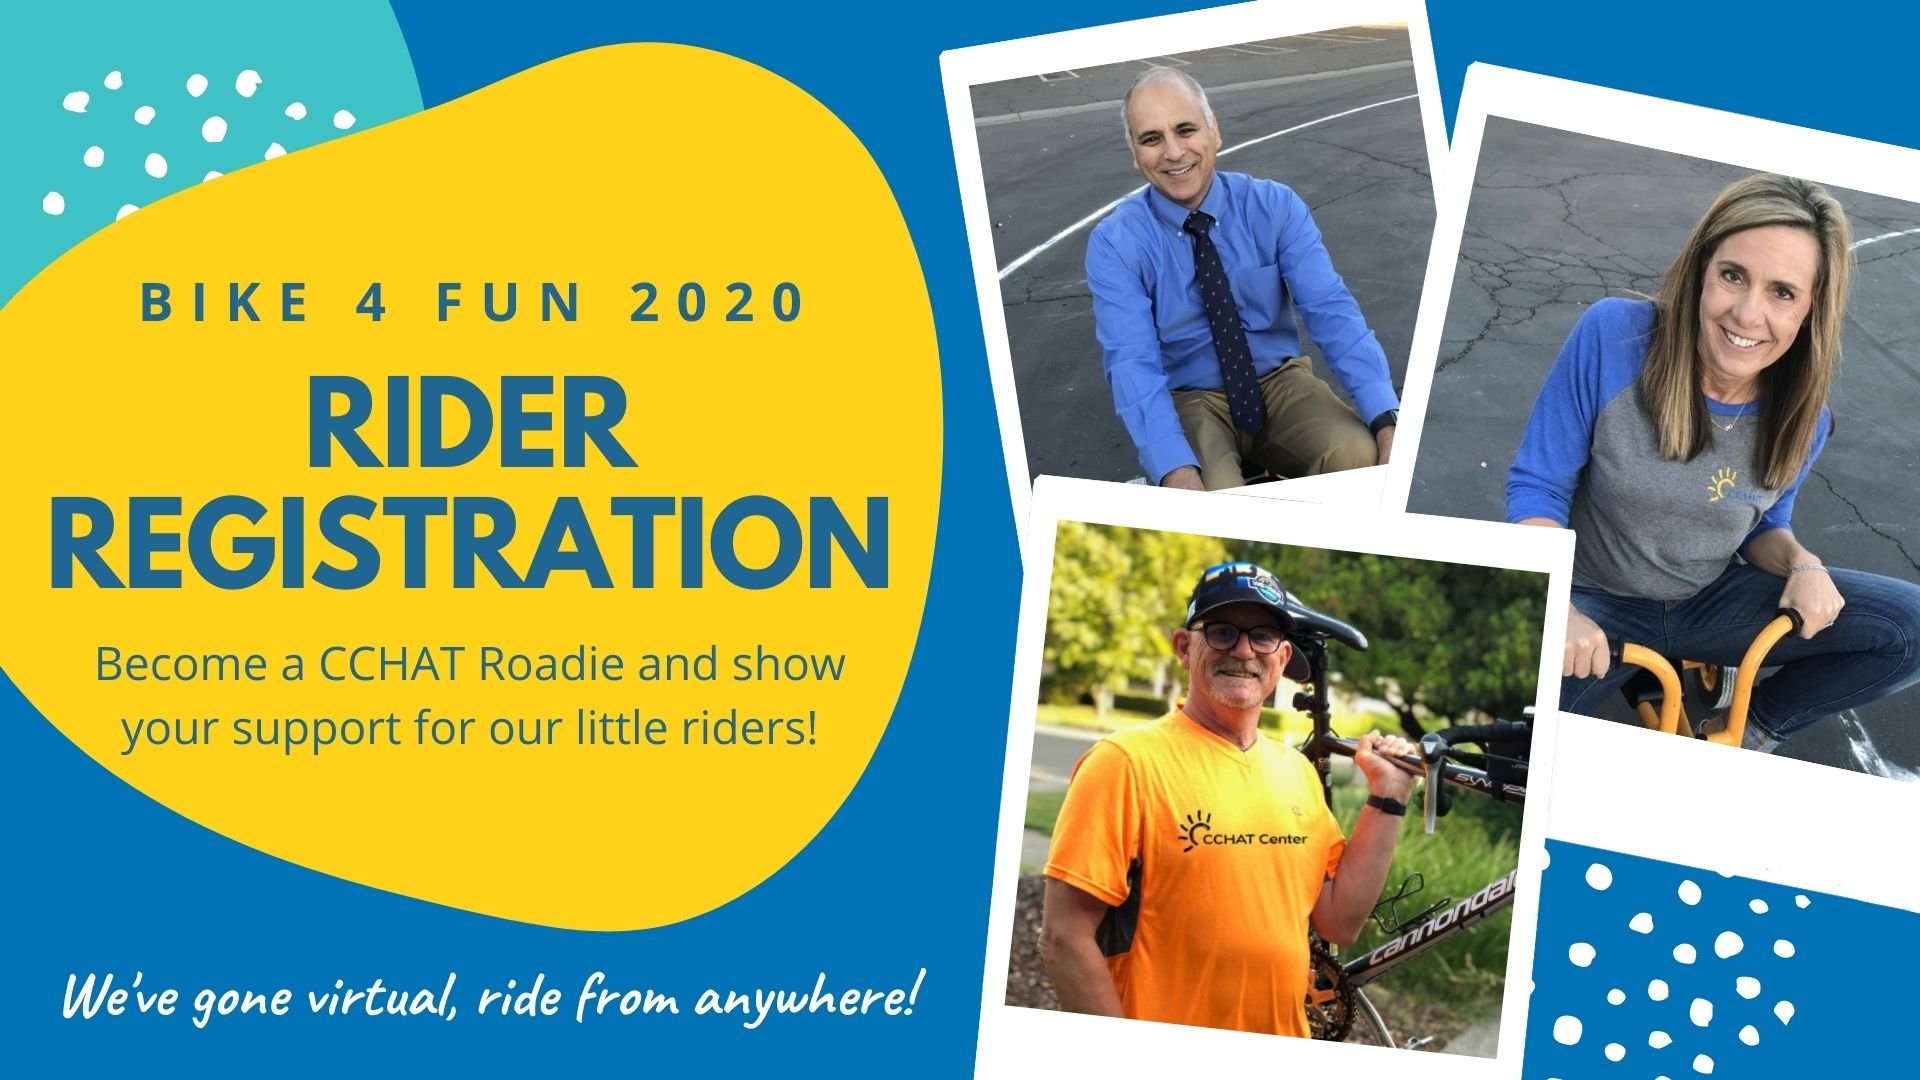 Become a CCHAT Roadie for Bike 4 Fun 2020!